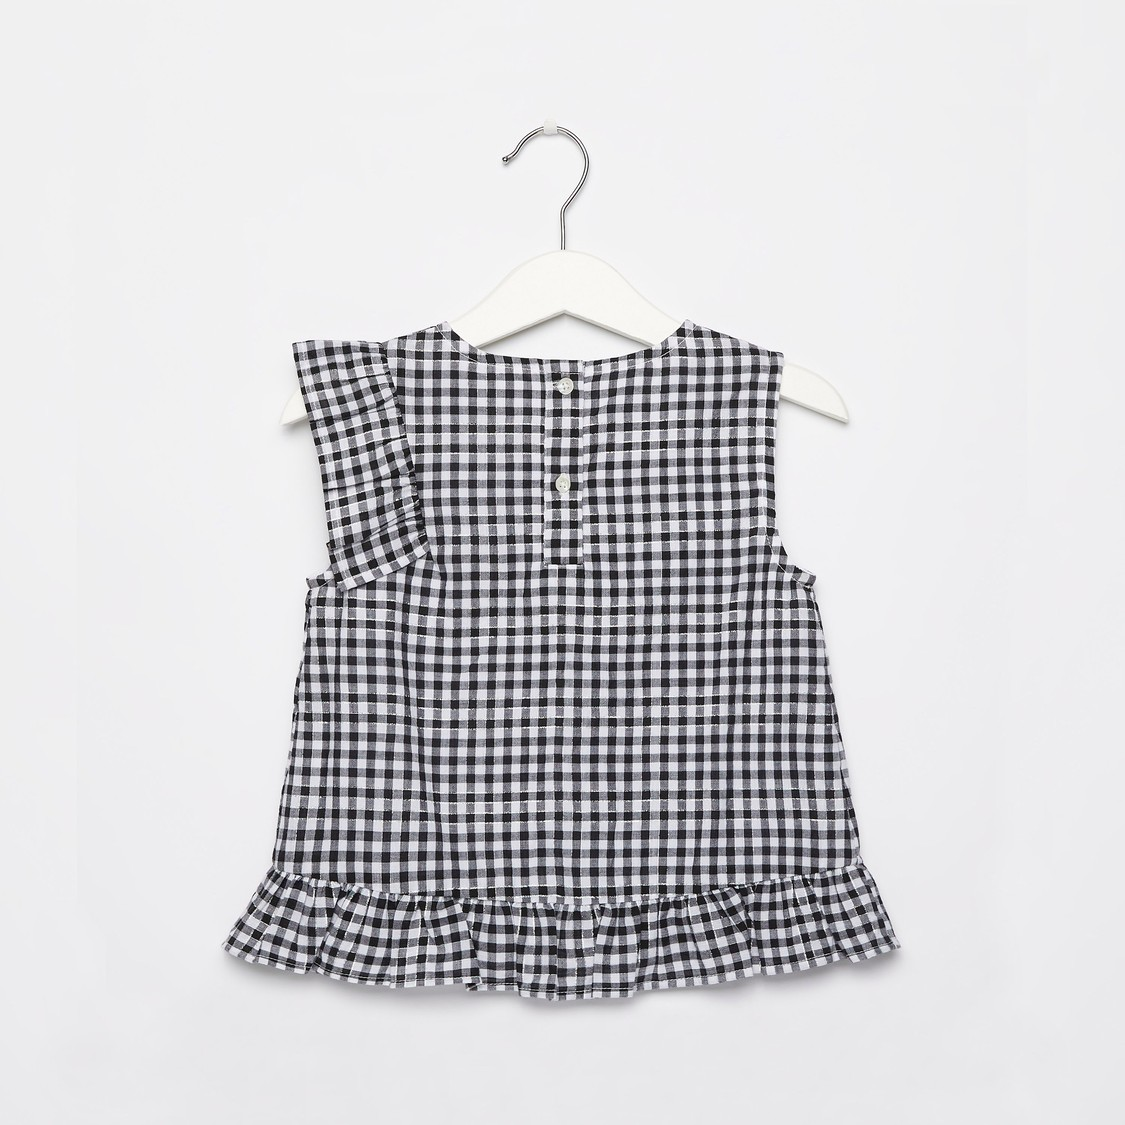 Gingham Checked Top with Round Neck and Button Closure